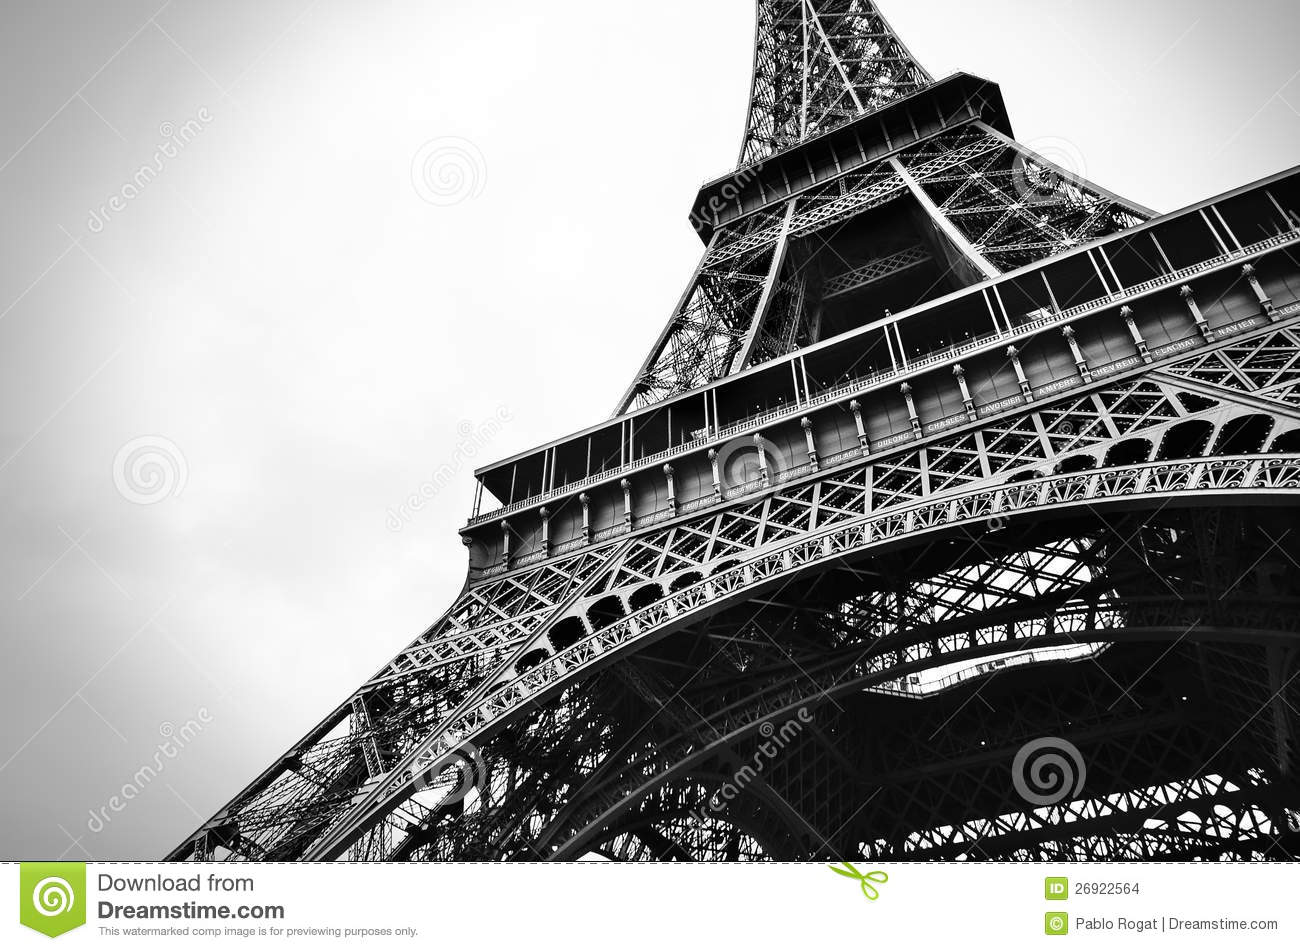 Eiffel Tower Images Black And White: Eiffel Tower Black And White Beauty Stock Photo